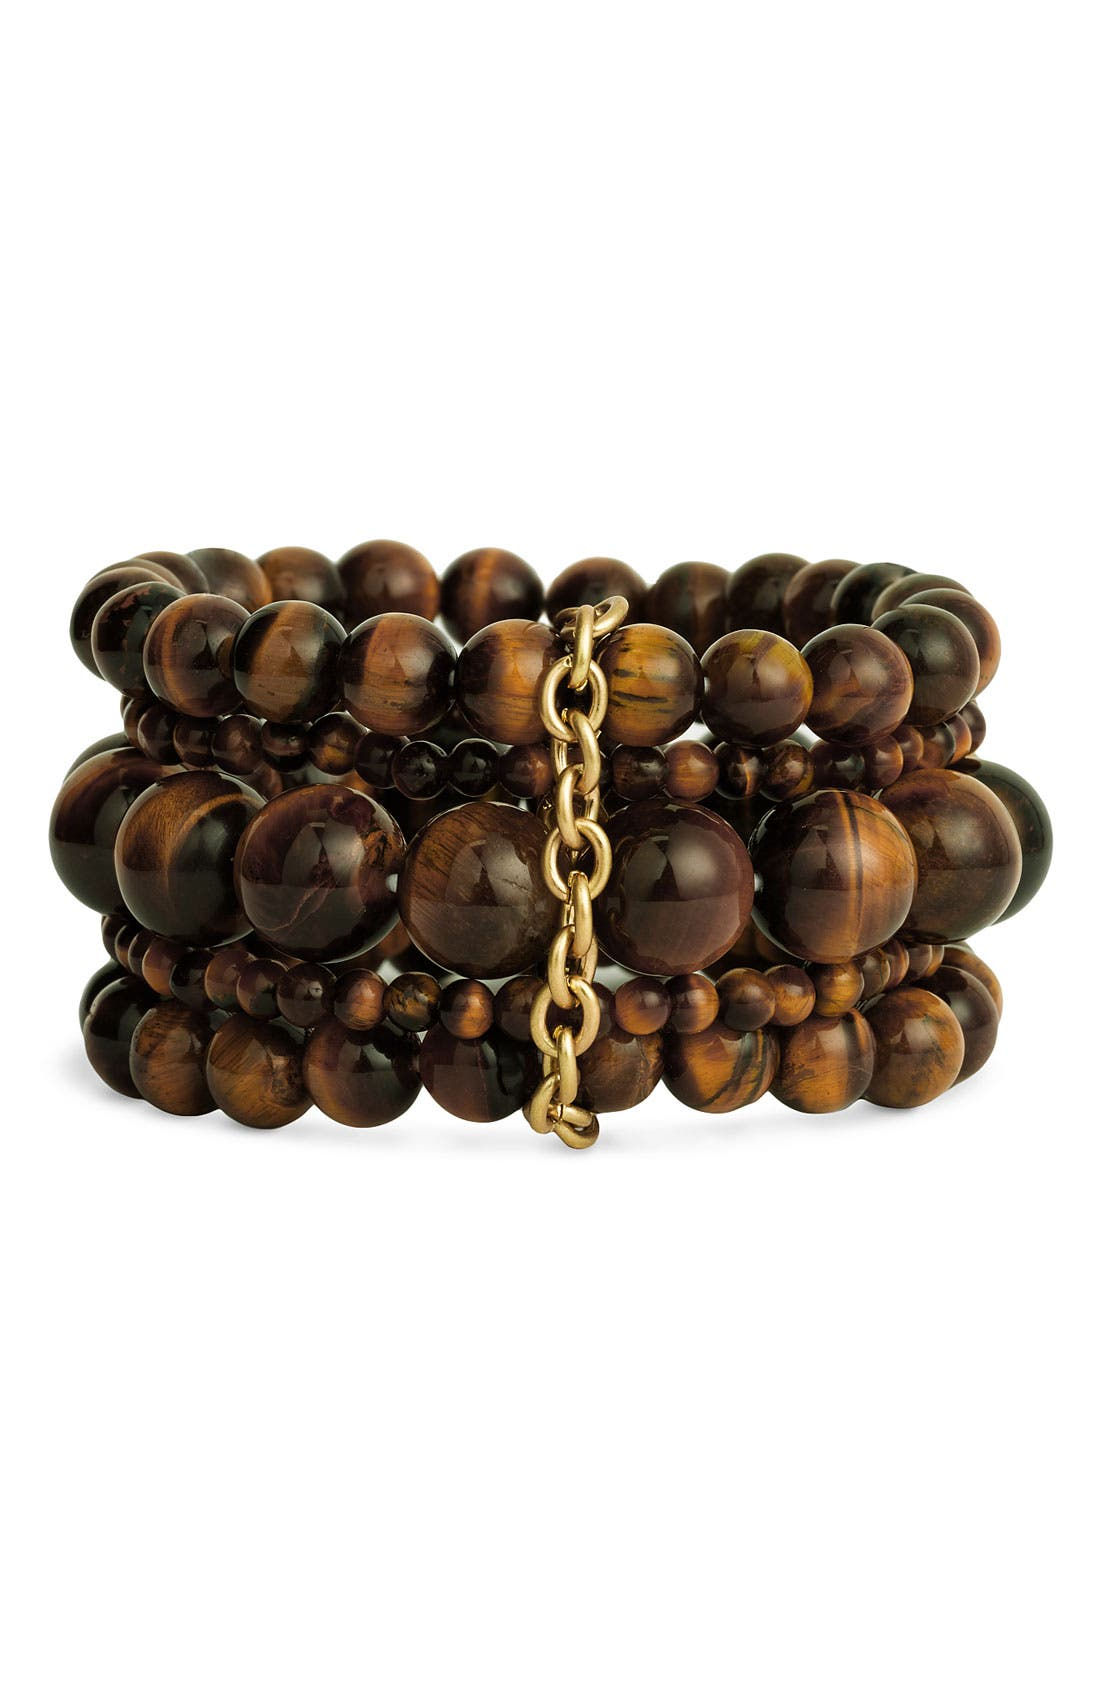 Main Image - Nordstrom Semiprecious Bead Stretch Bracelets (Set of 5)